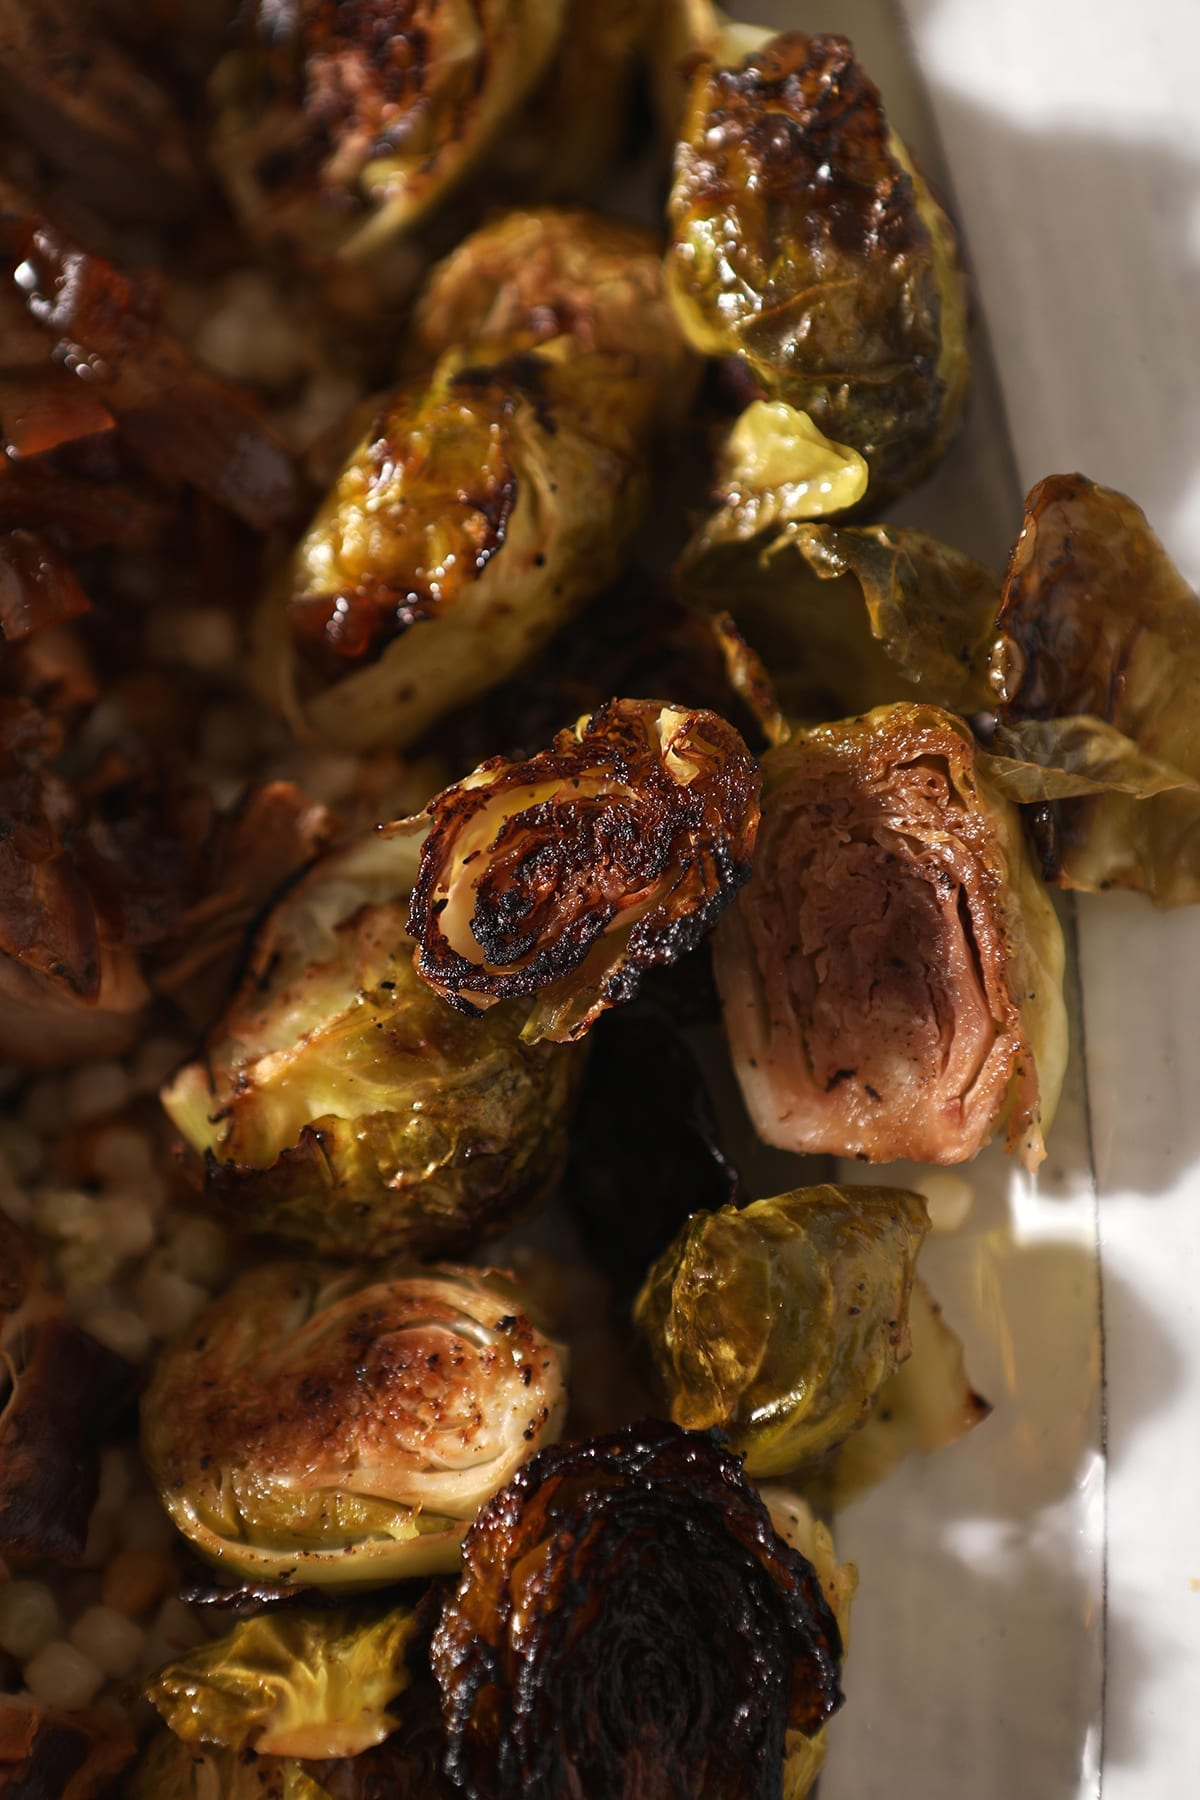 Roasted brussels sprouts on a white serving tray